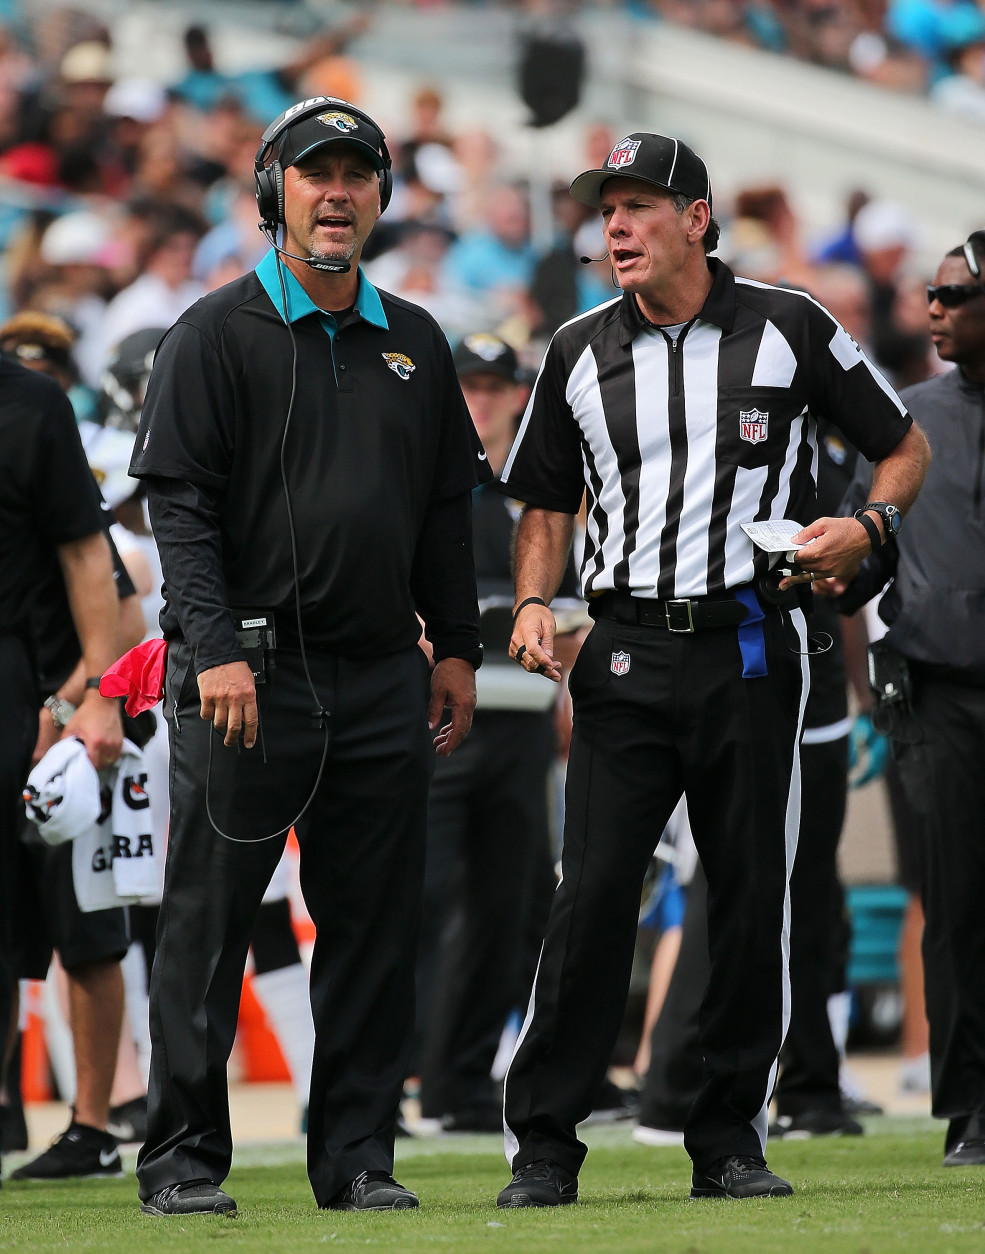 JACKSONVILLE, FL - SEPTEMBER 13: Head coach Gus Bradley of the Jacksonville Jaguars talks with a referee during a game against the Carolina Panthers at EverBank Field on September 13, 2015 in Jacksonville, Florida.  (Photo by Mike Ehrmann/Getty Images)